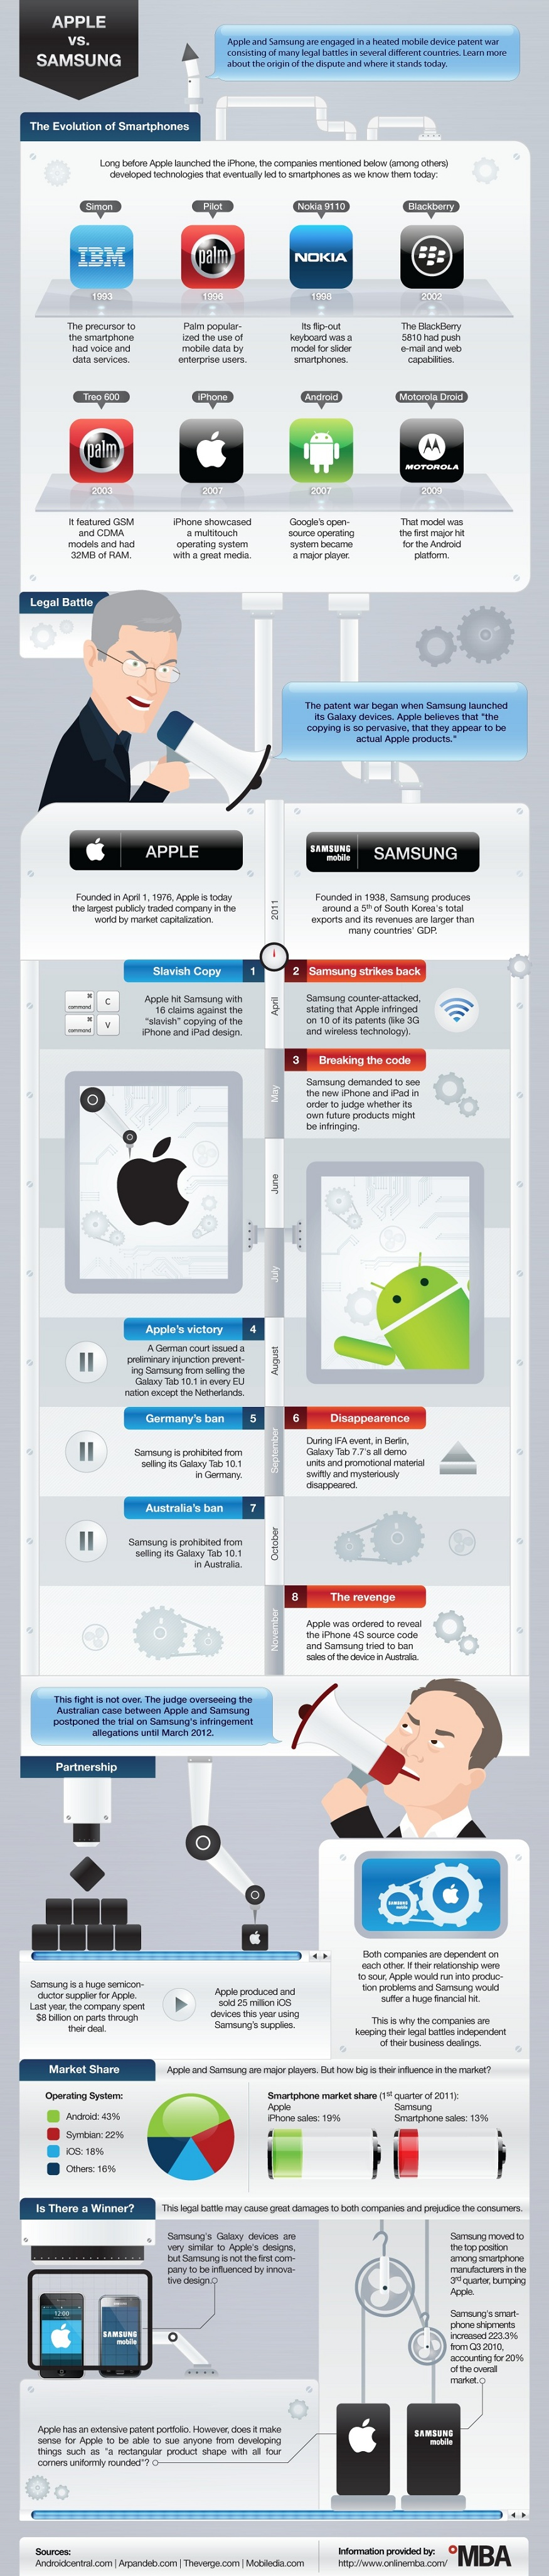 The Patent War: Apple vs. Samsung [INFOGRAPHIC]